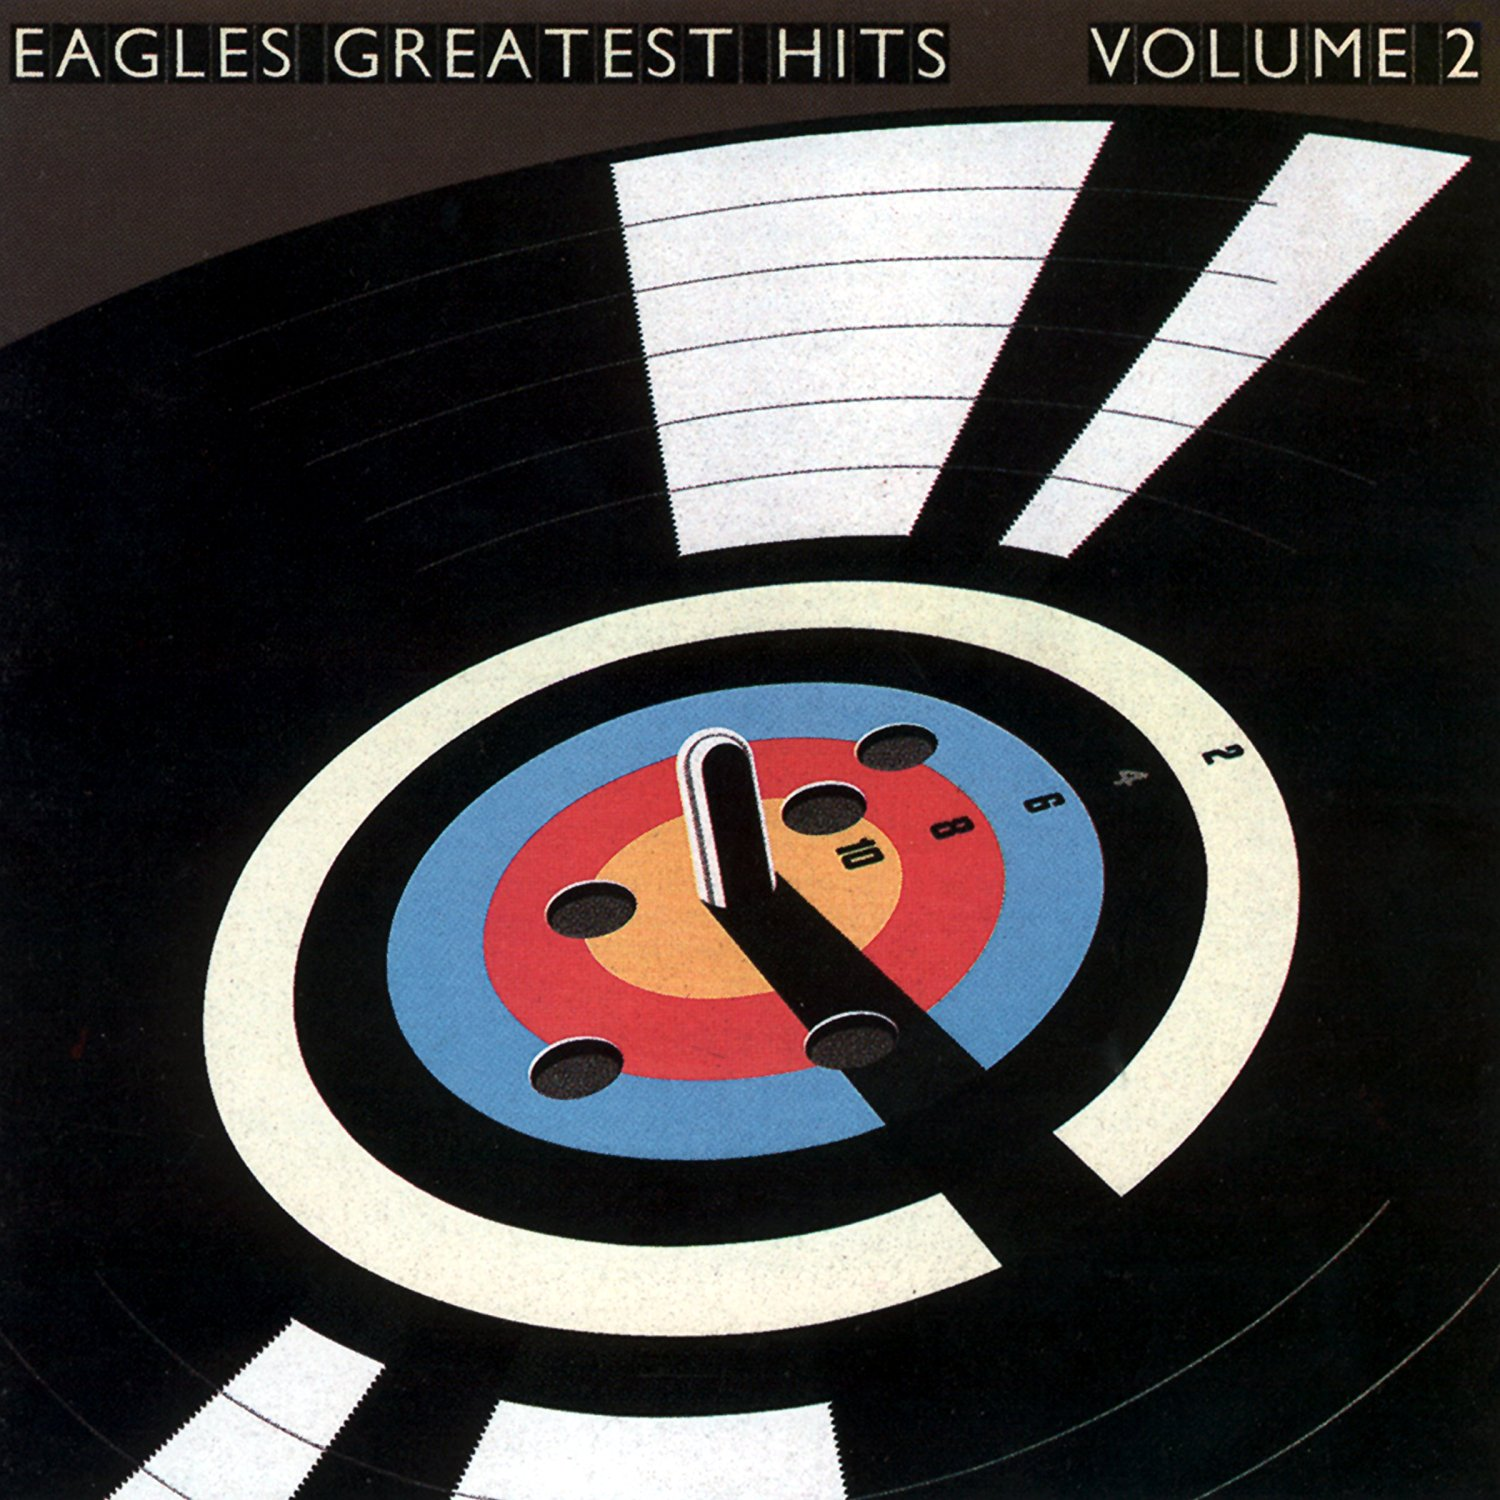 Eagles Greatest Hits 1 & 2 Combined On CD, Vinyl